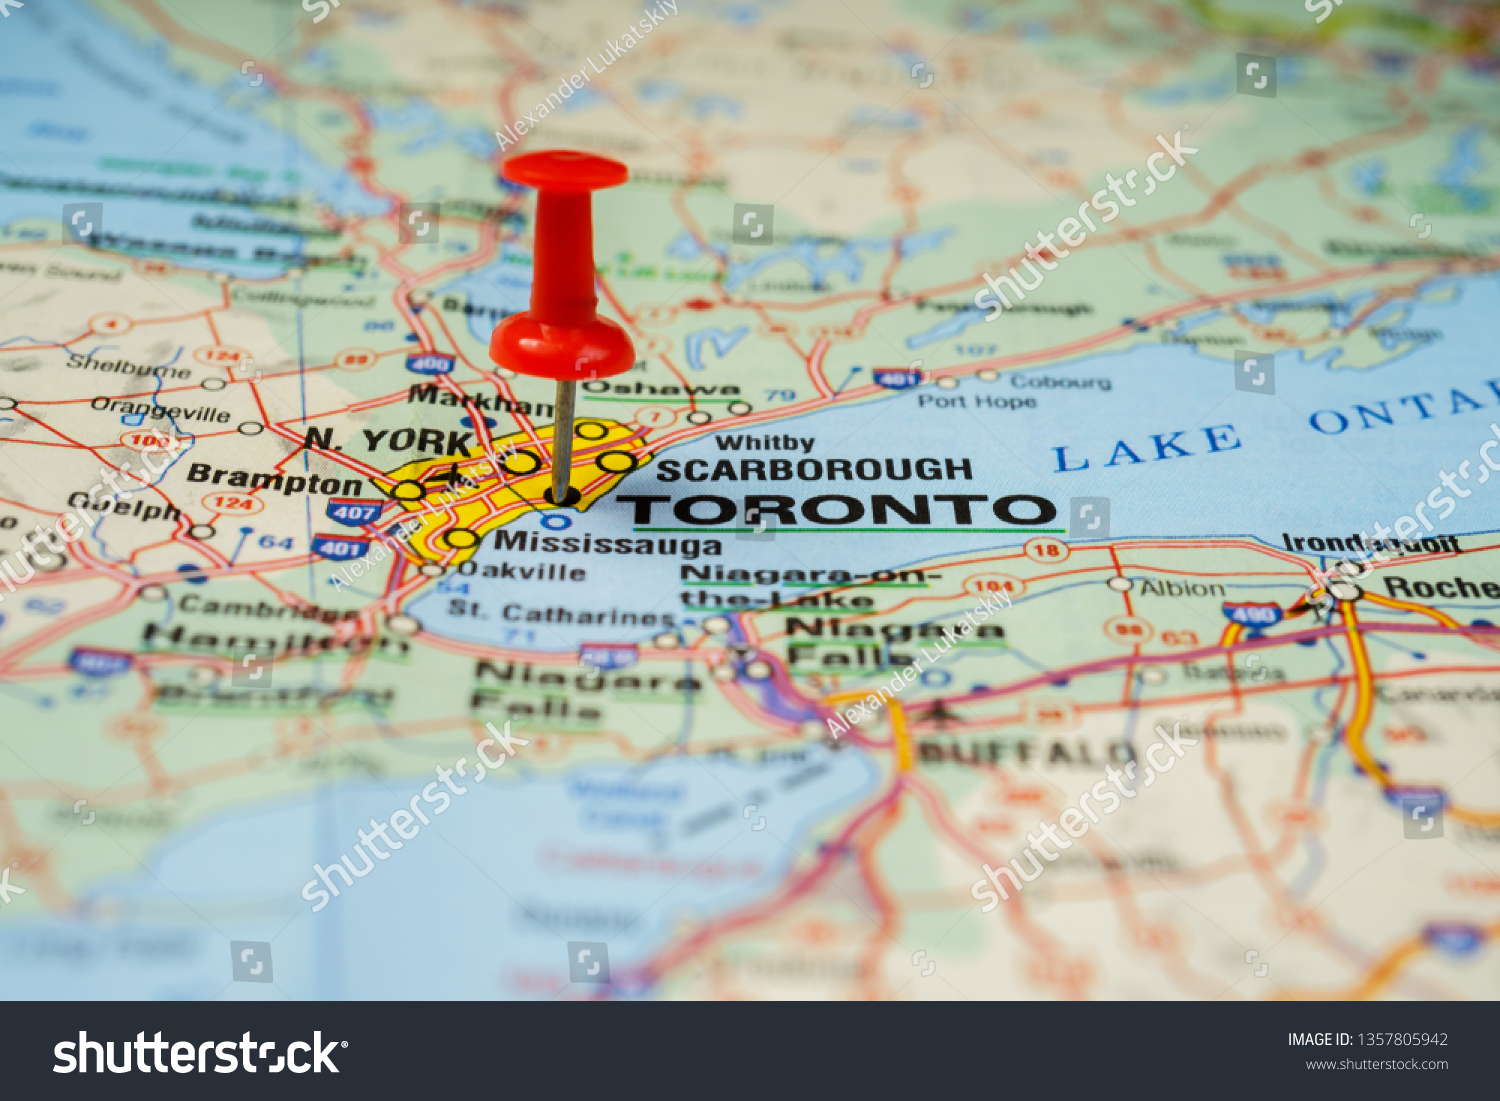 Toronto Canada Map Background Stock Photo (Edit Now) 1357805942 on ontario canada, map of california, map of las vegas, map of new york, shopping toronto canada, map of philadelphia, map of istanbul turkey, map of hong kong, map of japan, map of ohio, cn tower toronto canada, provinces of canada, wonder mountain toronto canada, map of usa, weather toronto canada, landmarks toronto canada, road map toronto canada, hotels in toronto canada, house toronto canada, tourism toronto canada,